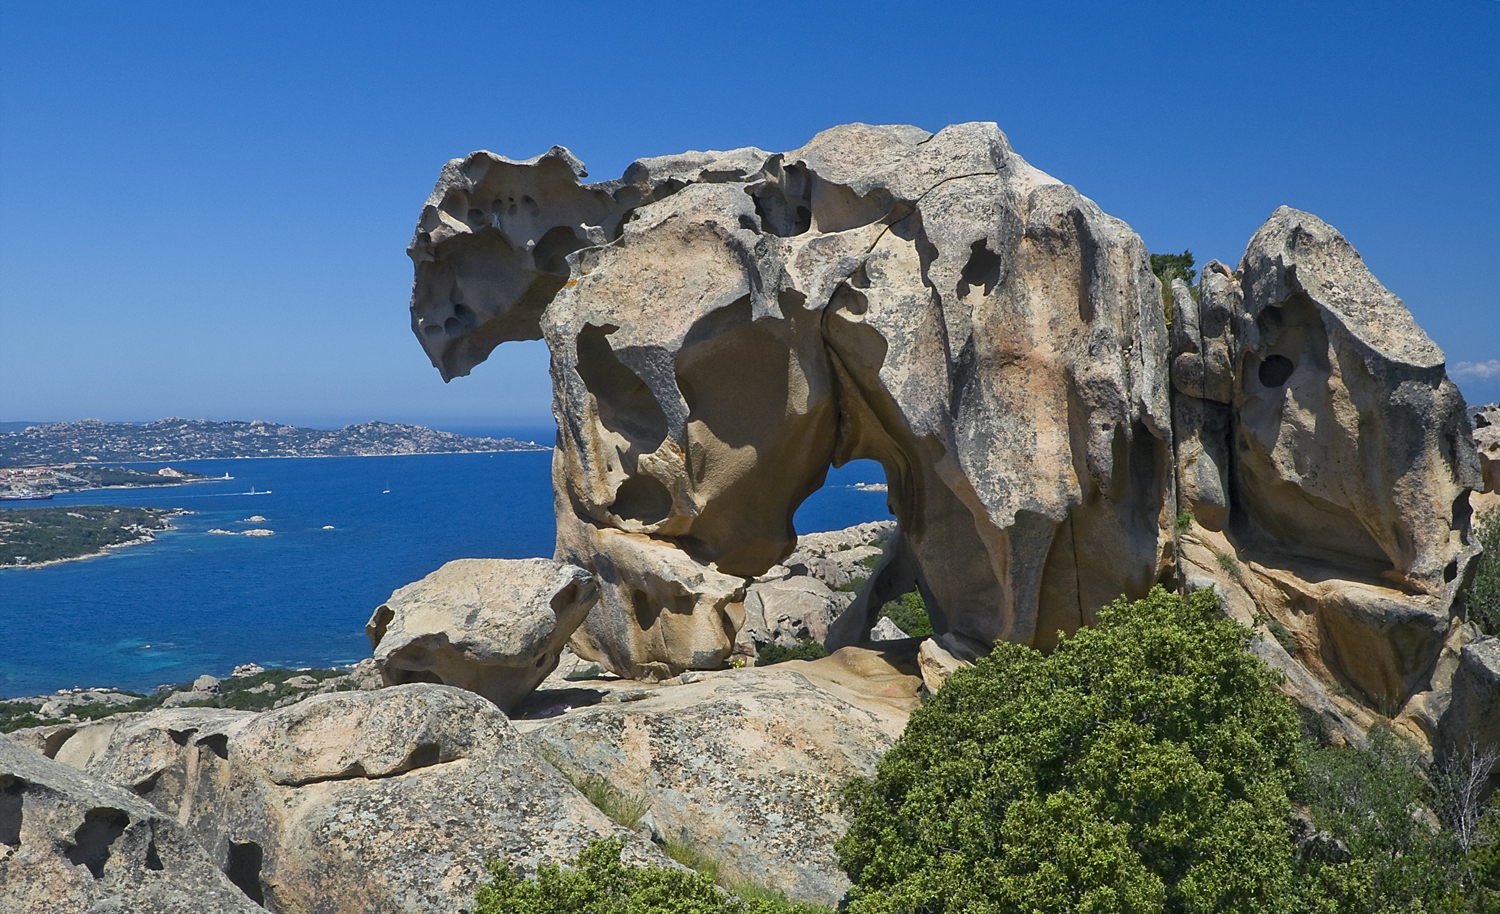 Natural sculpture of a rock resembling a bear, overlooking the sea